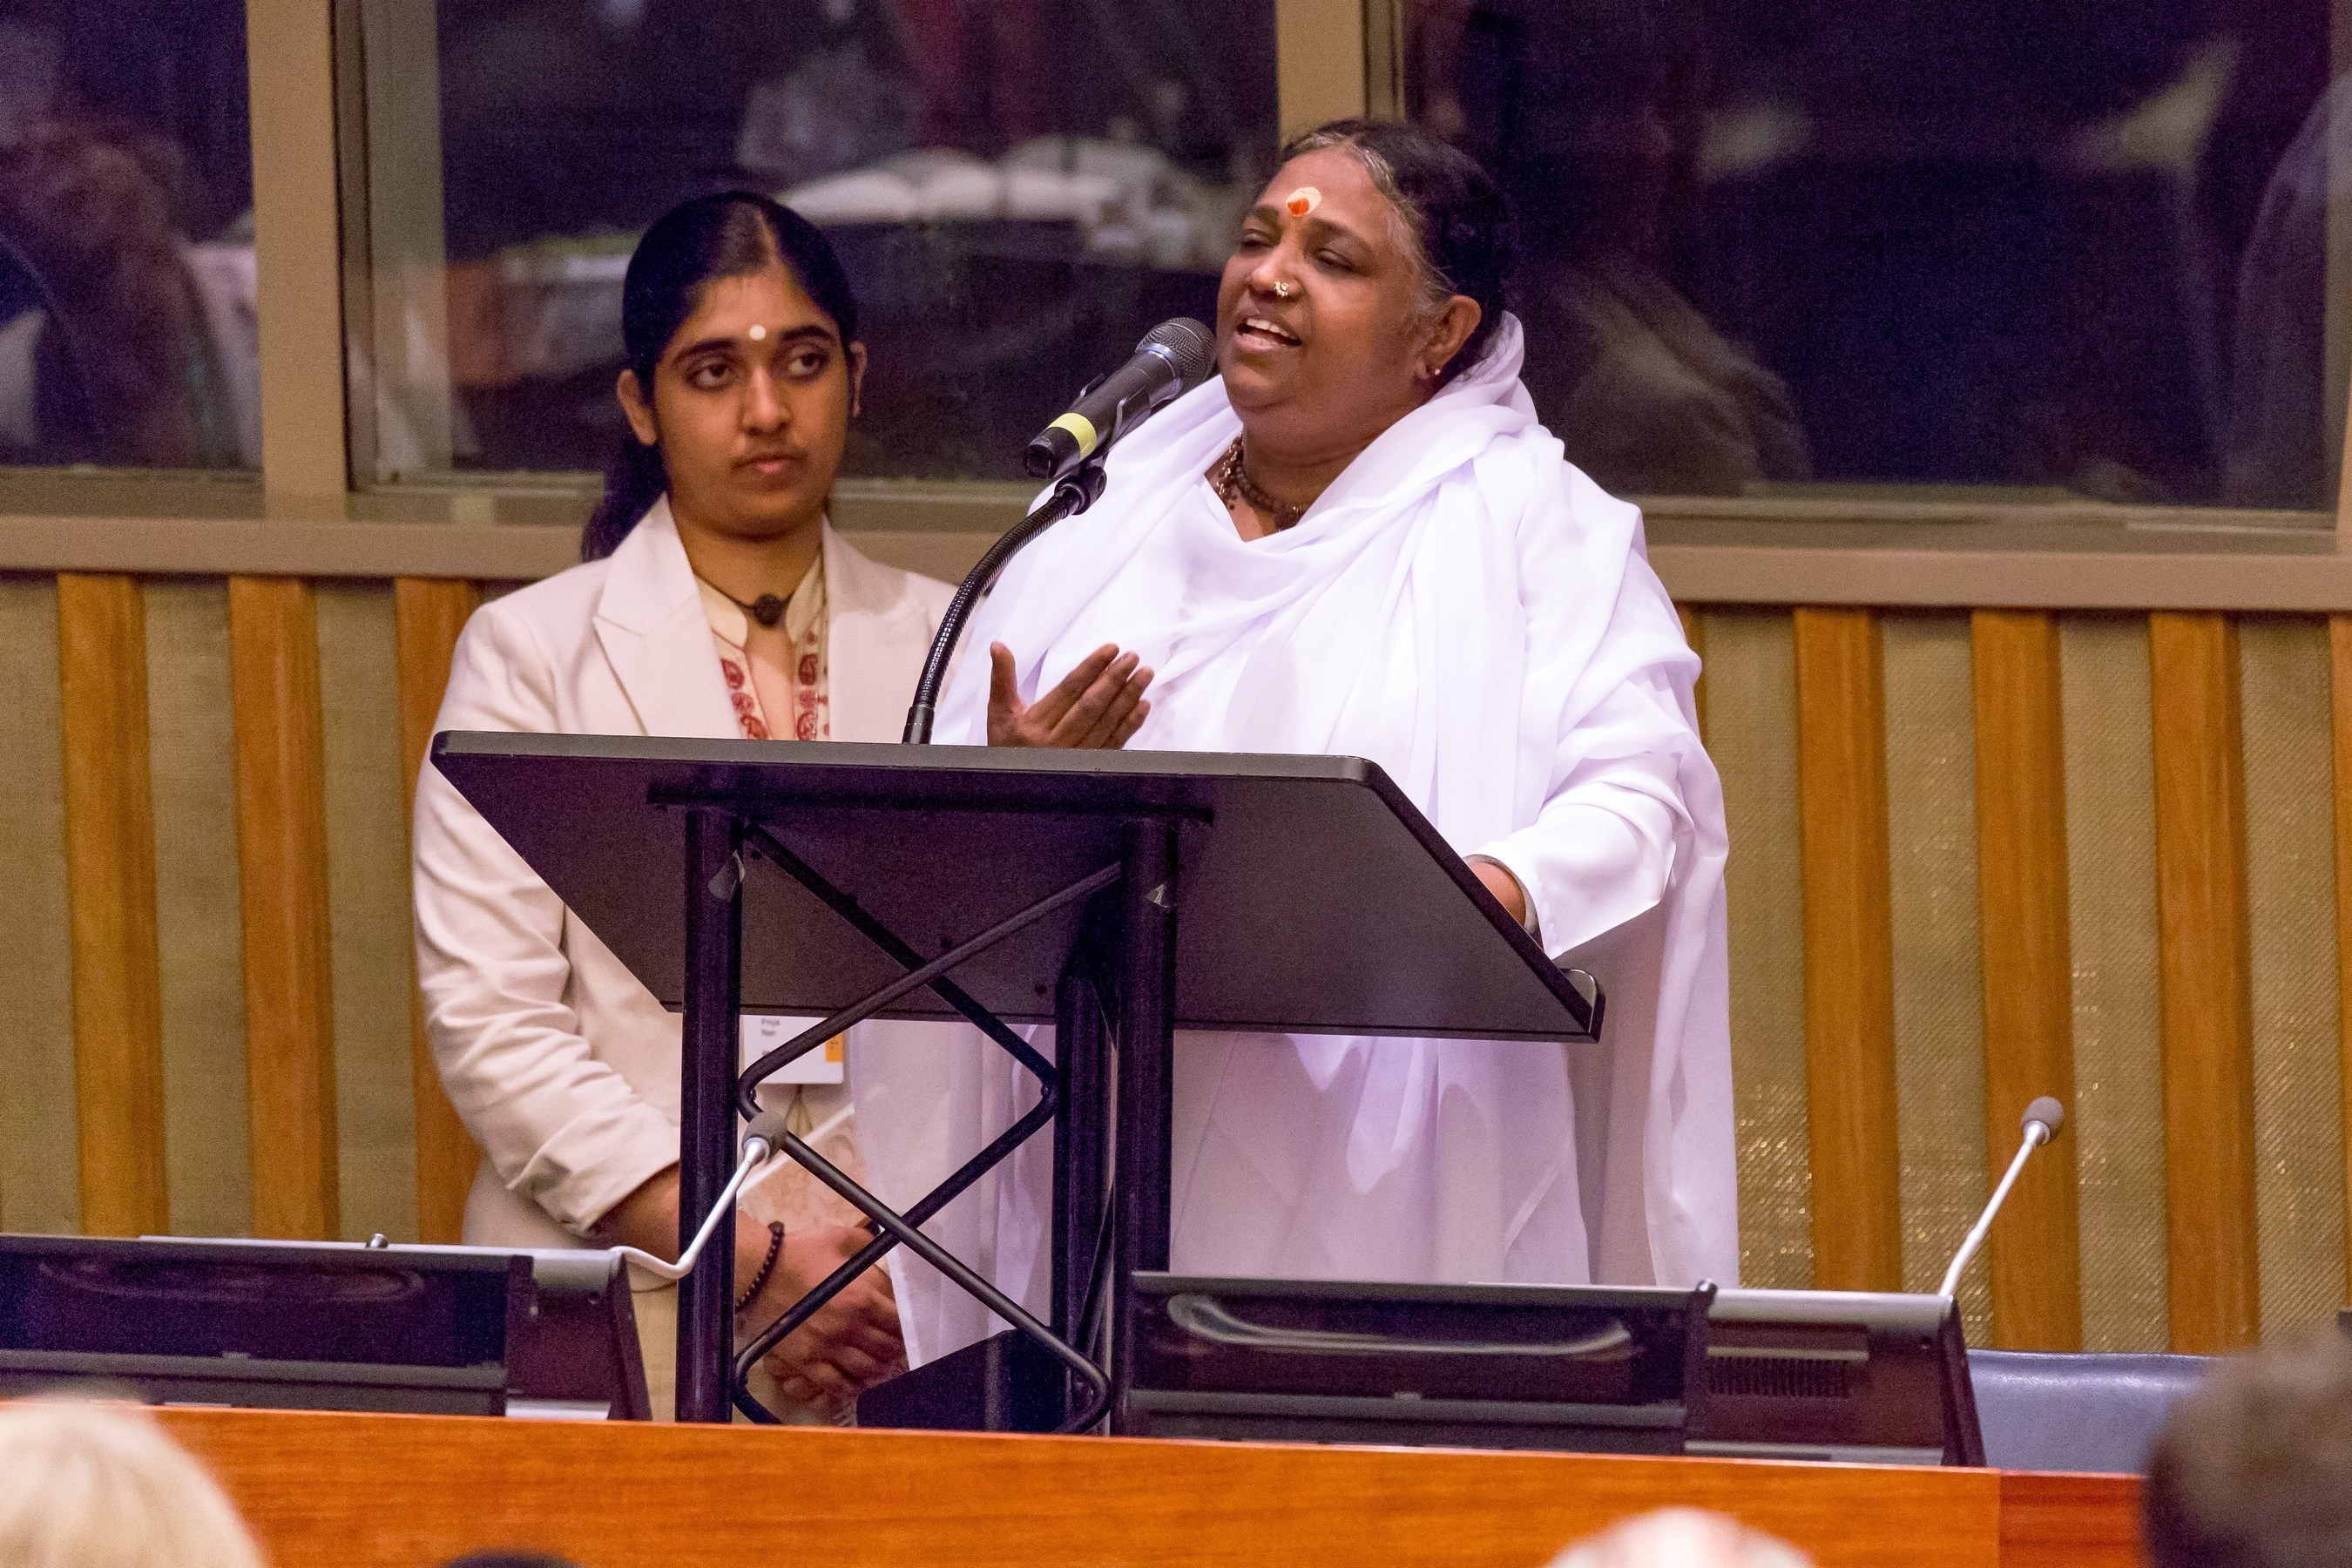 July 8, New York, Spiritual leader and humanitarian Mata Amritanandamayi (Amma) delivers an address at a United Nations Academic Impact conference on technology for sustainable development, co-hosted by Amrita University. She urged the scientific community to keep in mind the upliftment of the poor and suffering when conceptualizing their research.